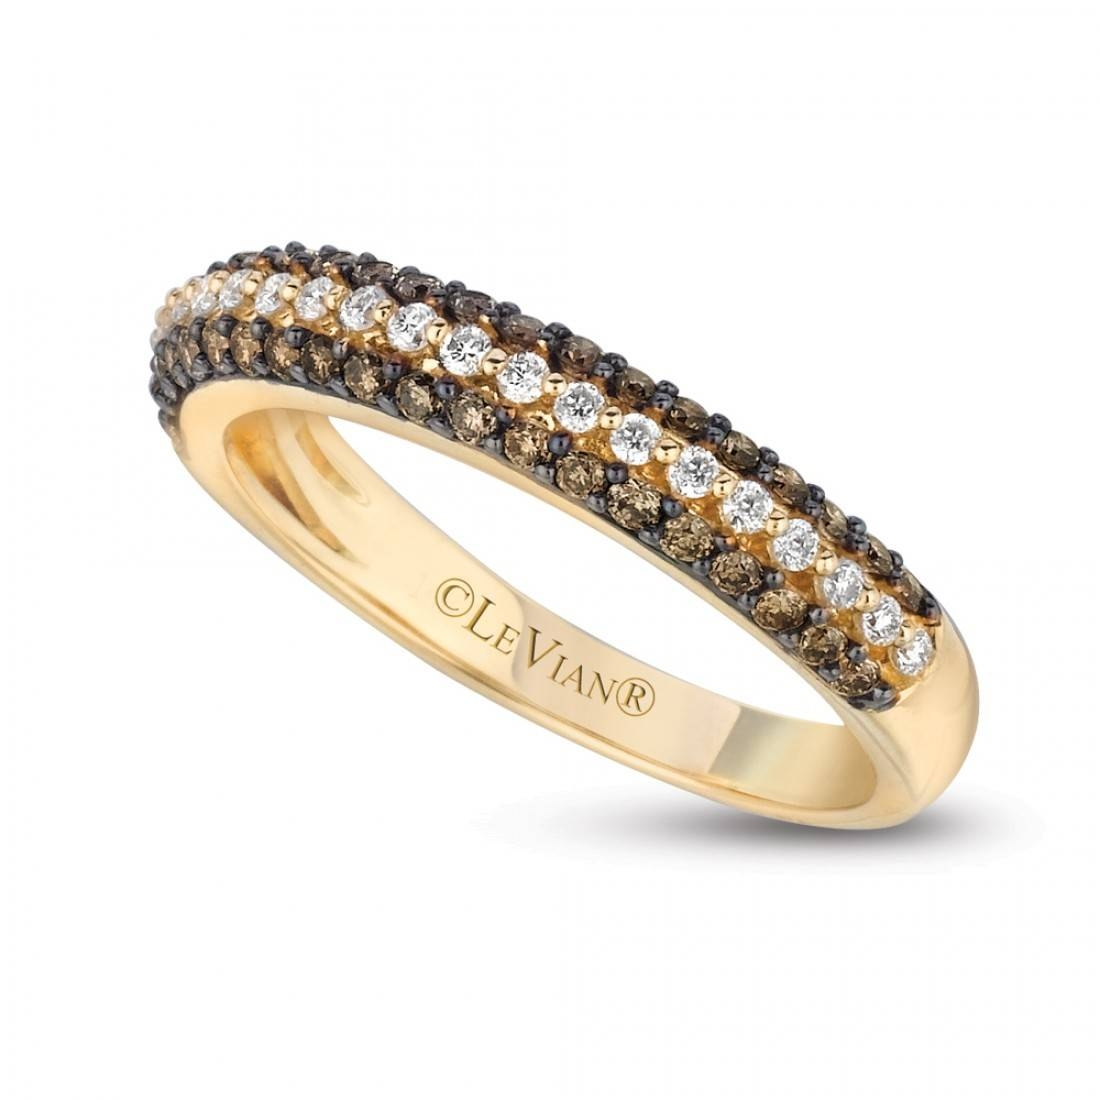 Le Vian 14K Yellow Gold Chocolate Pave Diamond Wedding Band In Le Vian Wedding Bands (View 13 of 15)